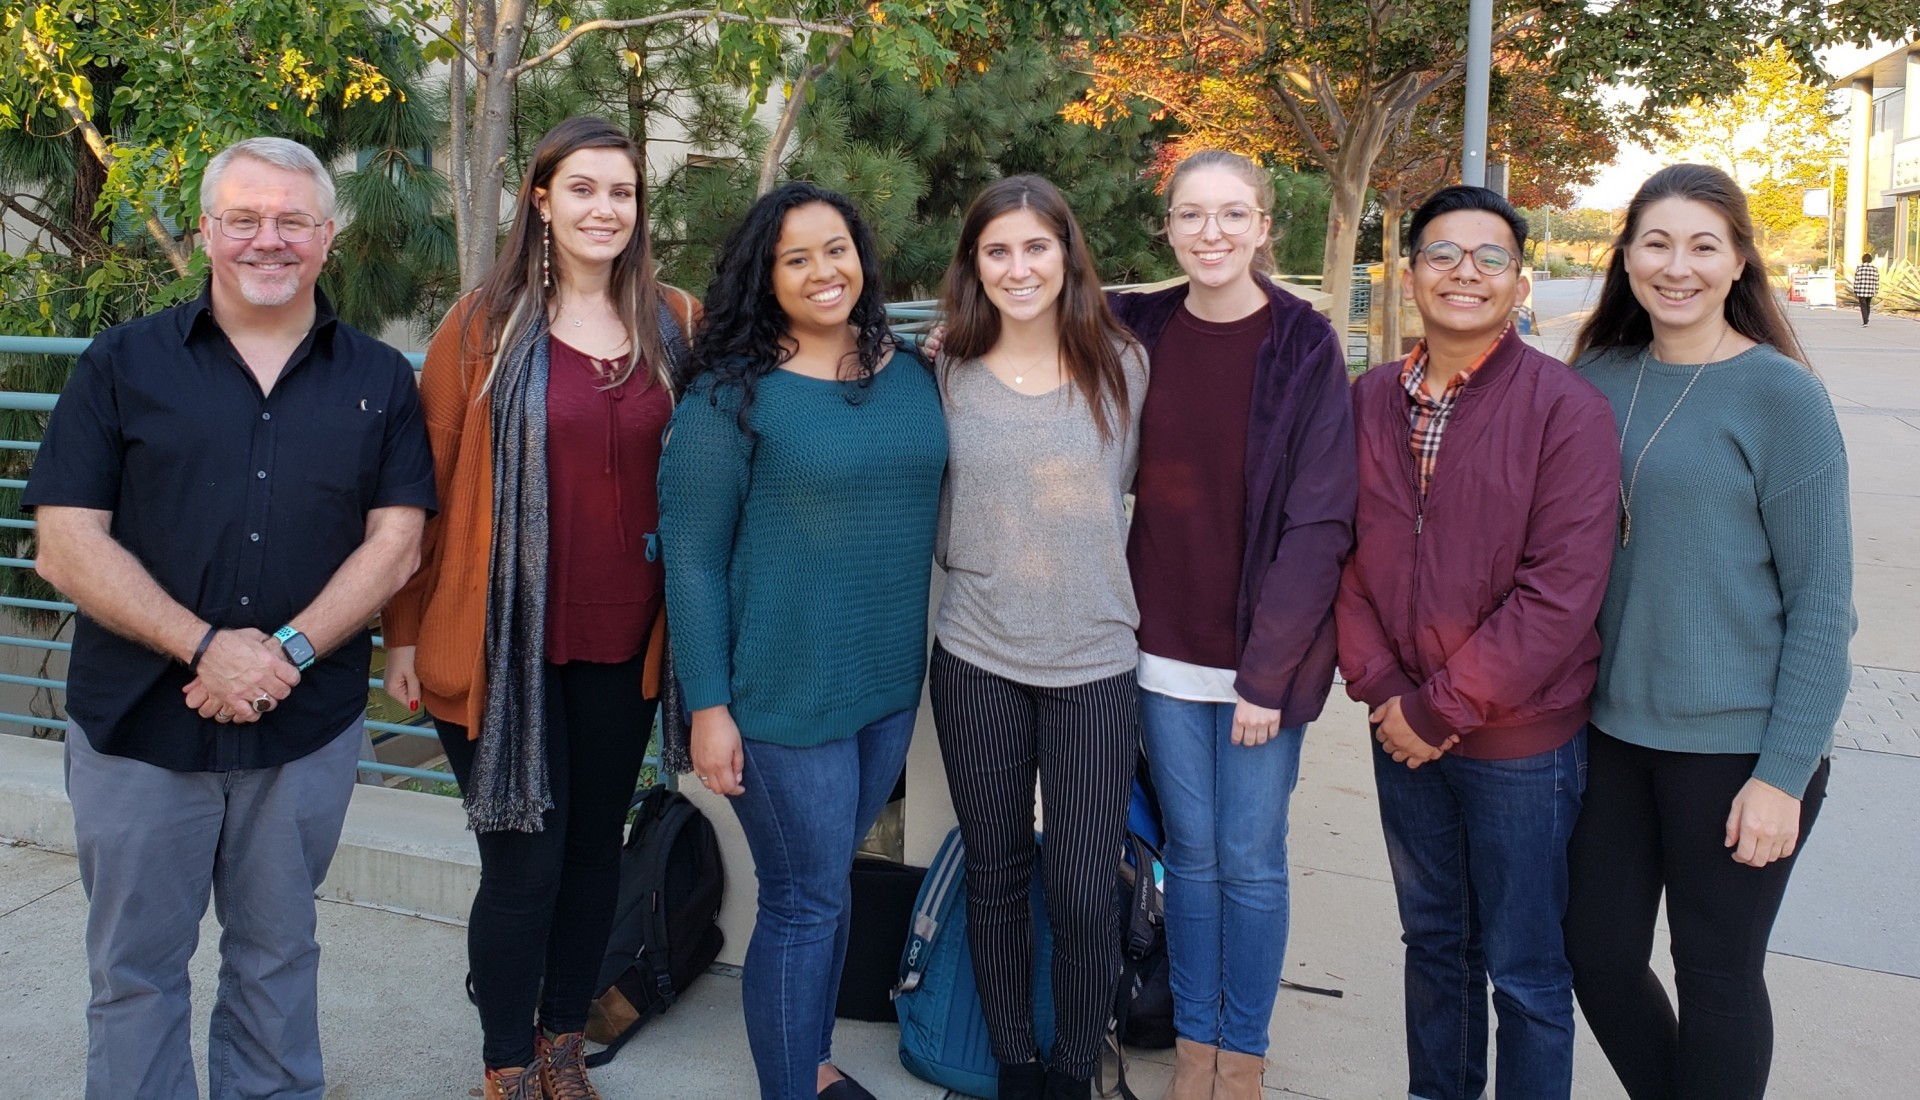 John Warner (far left), co-founder of the Warner Babcock Institute for Green Chemistry, poses with members of CSUSM chemistry professor Robert Iafe's lab, including (left to right) Brysa Alvarado, Emily Aguilar, Amanda Melanese, Emily Lyon, Roberto Leon Baxin and Amanda Smolin.